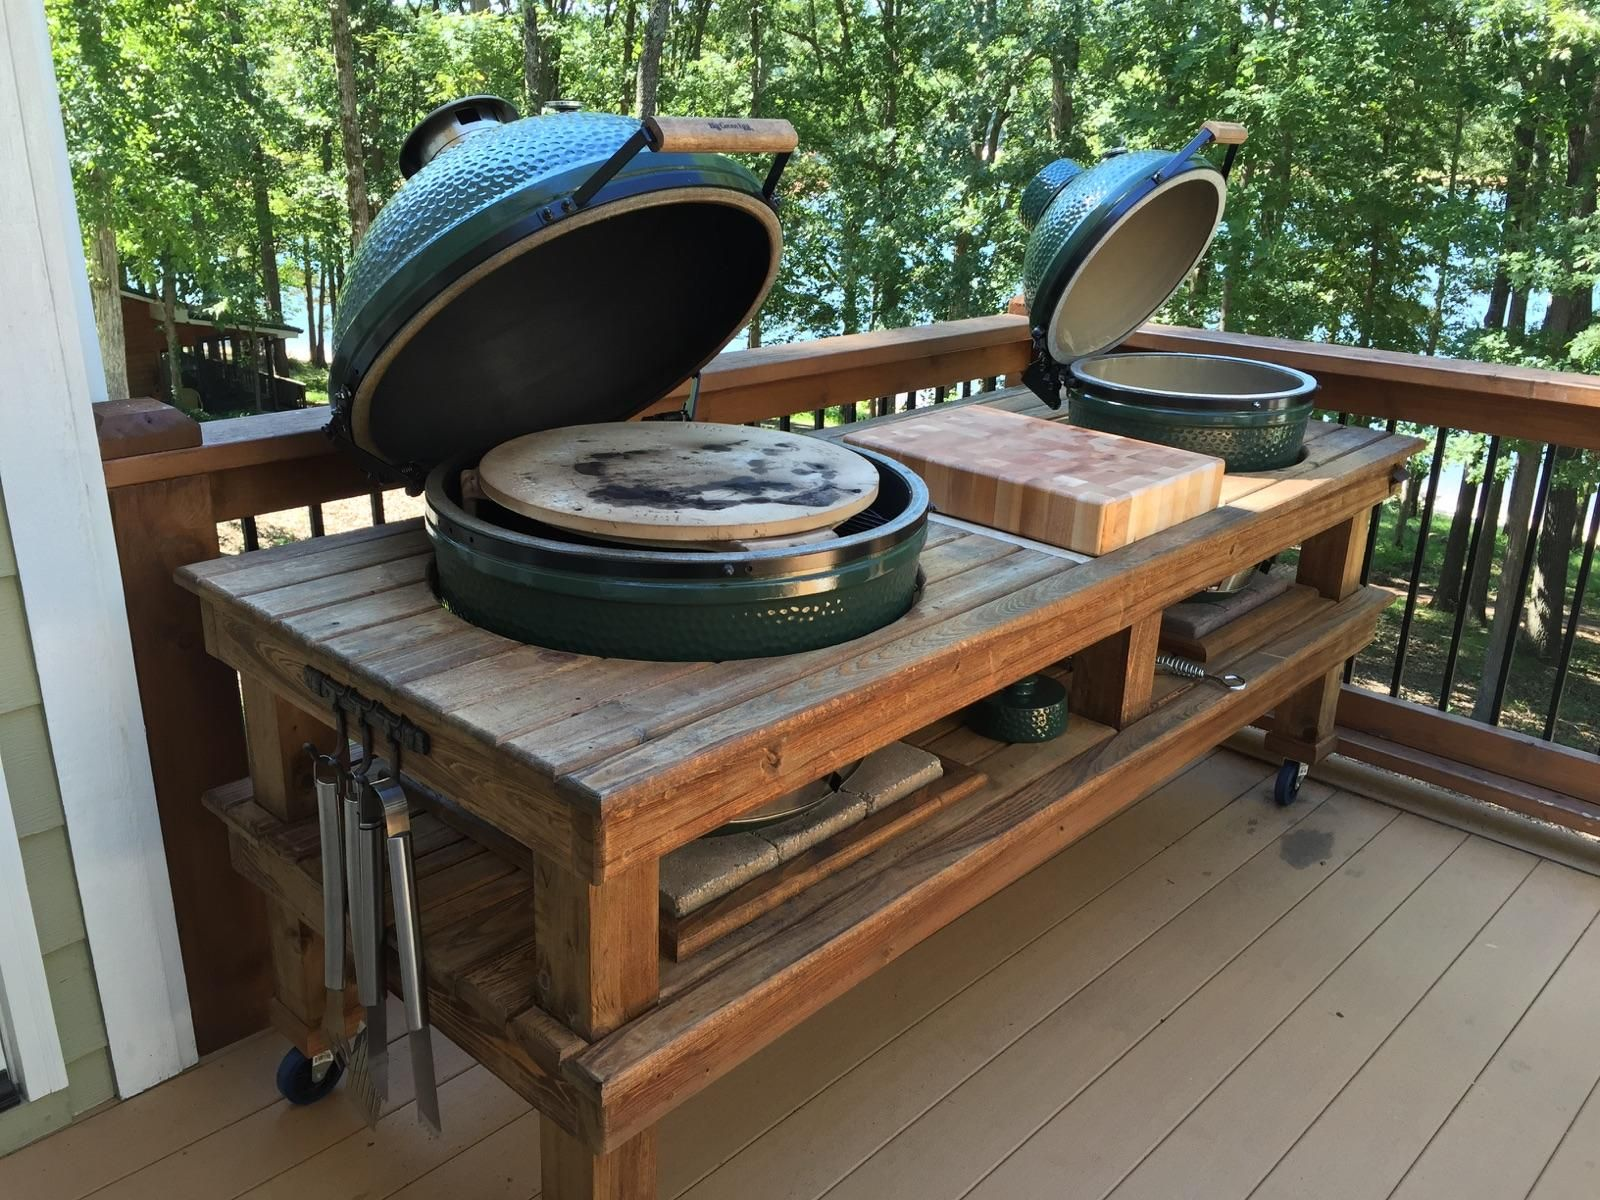 Standard Double Table Outdoor Kitchen Kamado Grill Table Grill